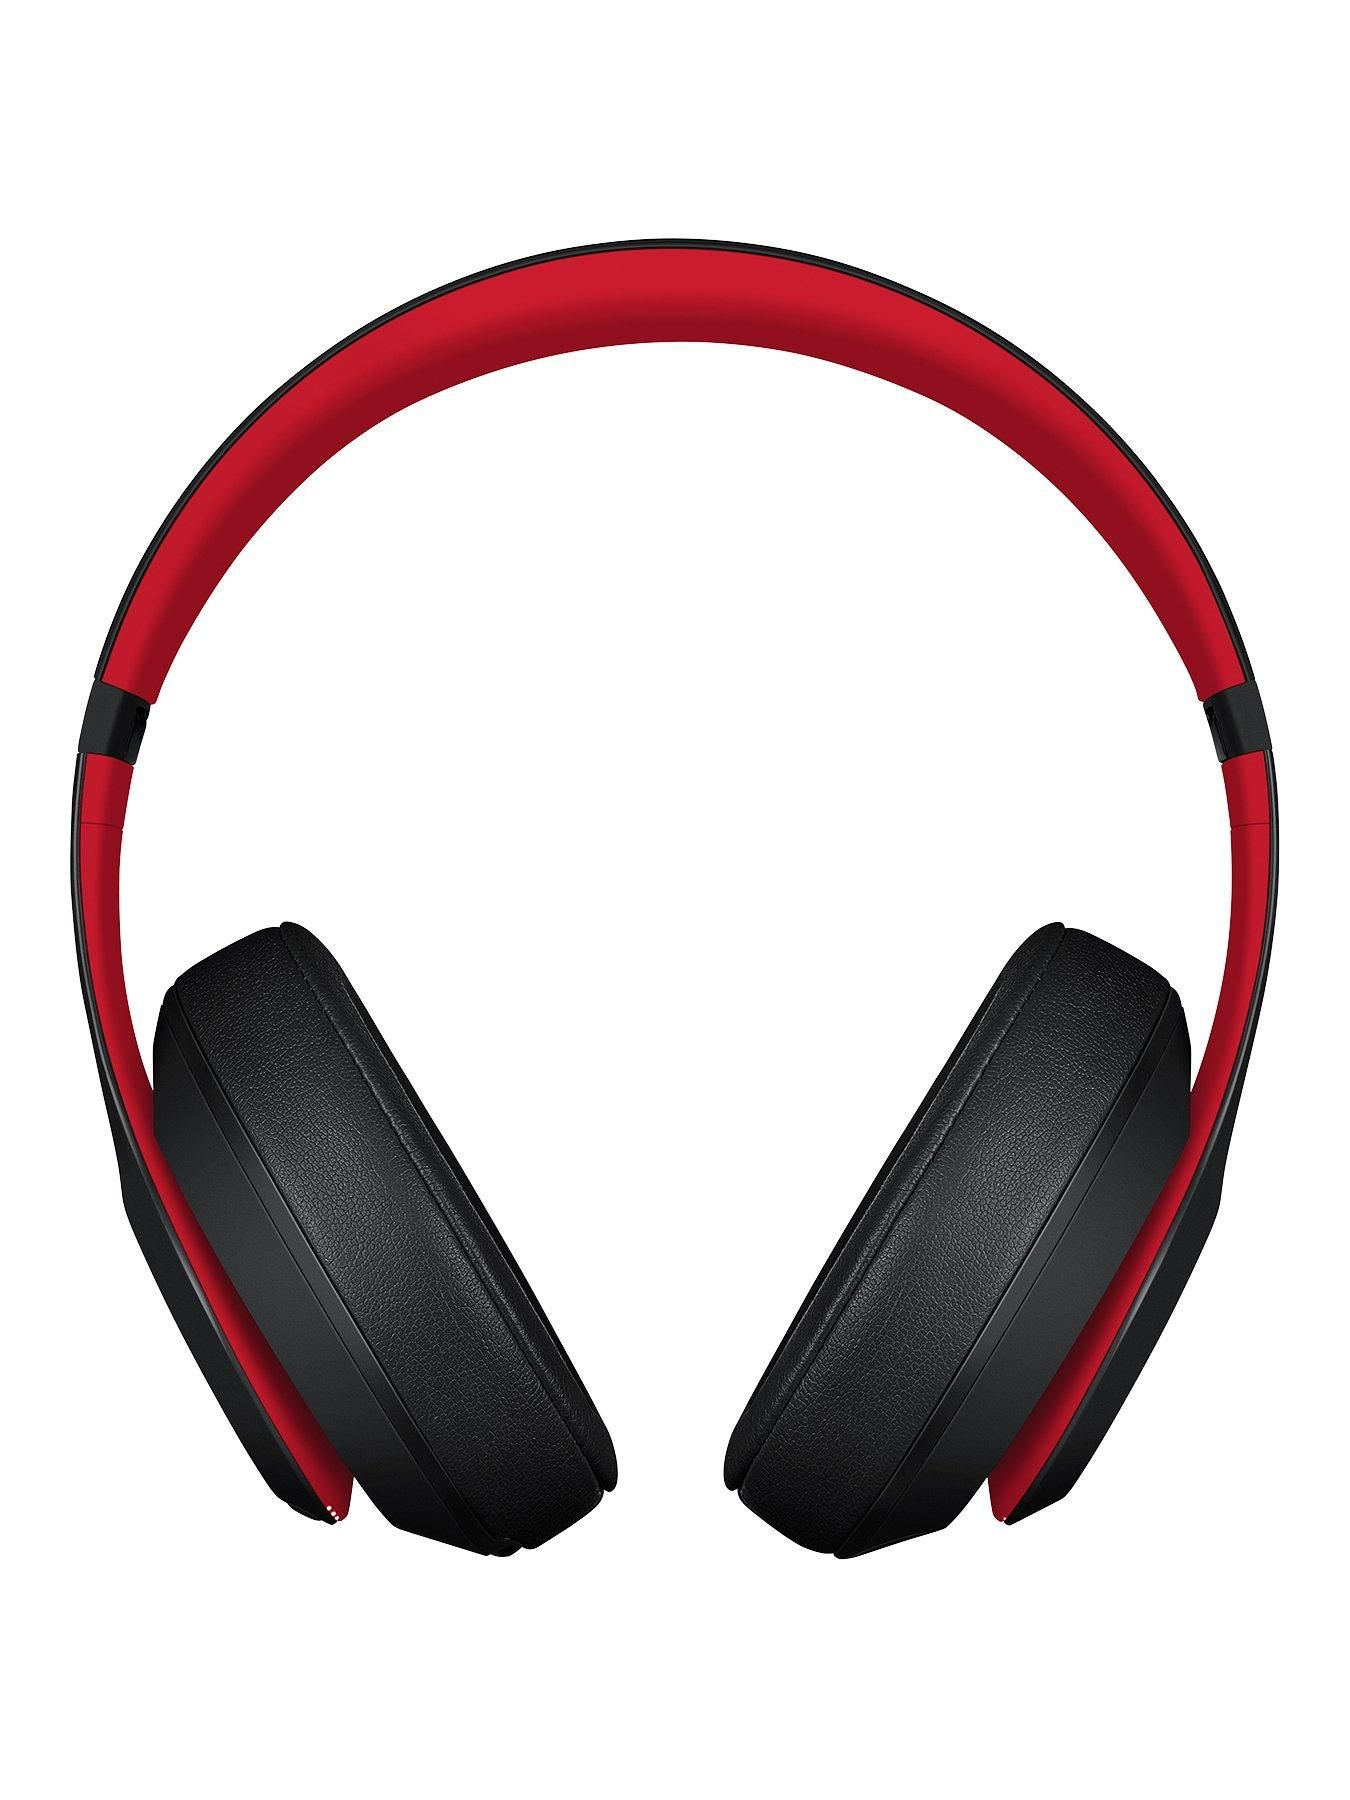 Beats By Dr Dre Studio 3 Wireless Headphones The Beats Decade Collection Defiant Black Red One Colour Wireless Headphones Headphones Beats By Dr